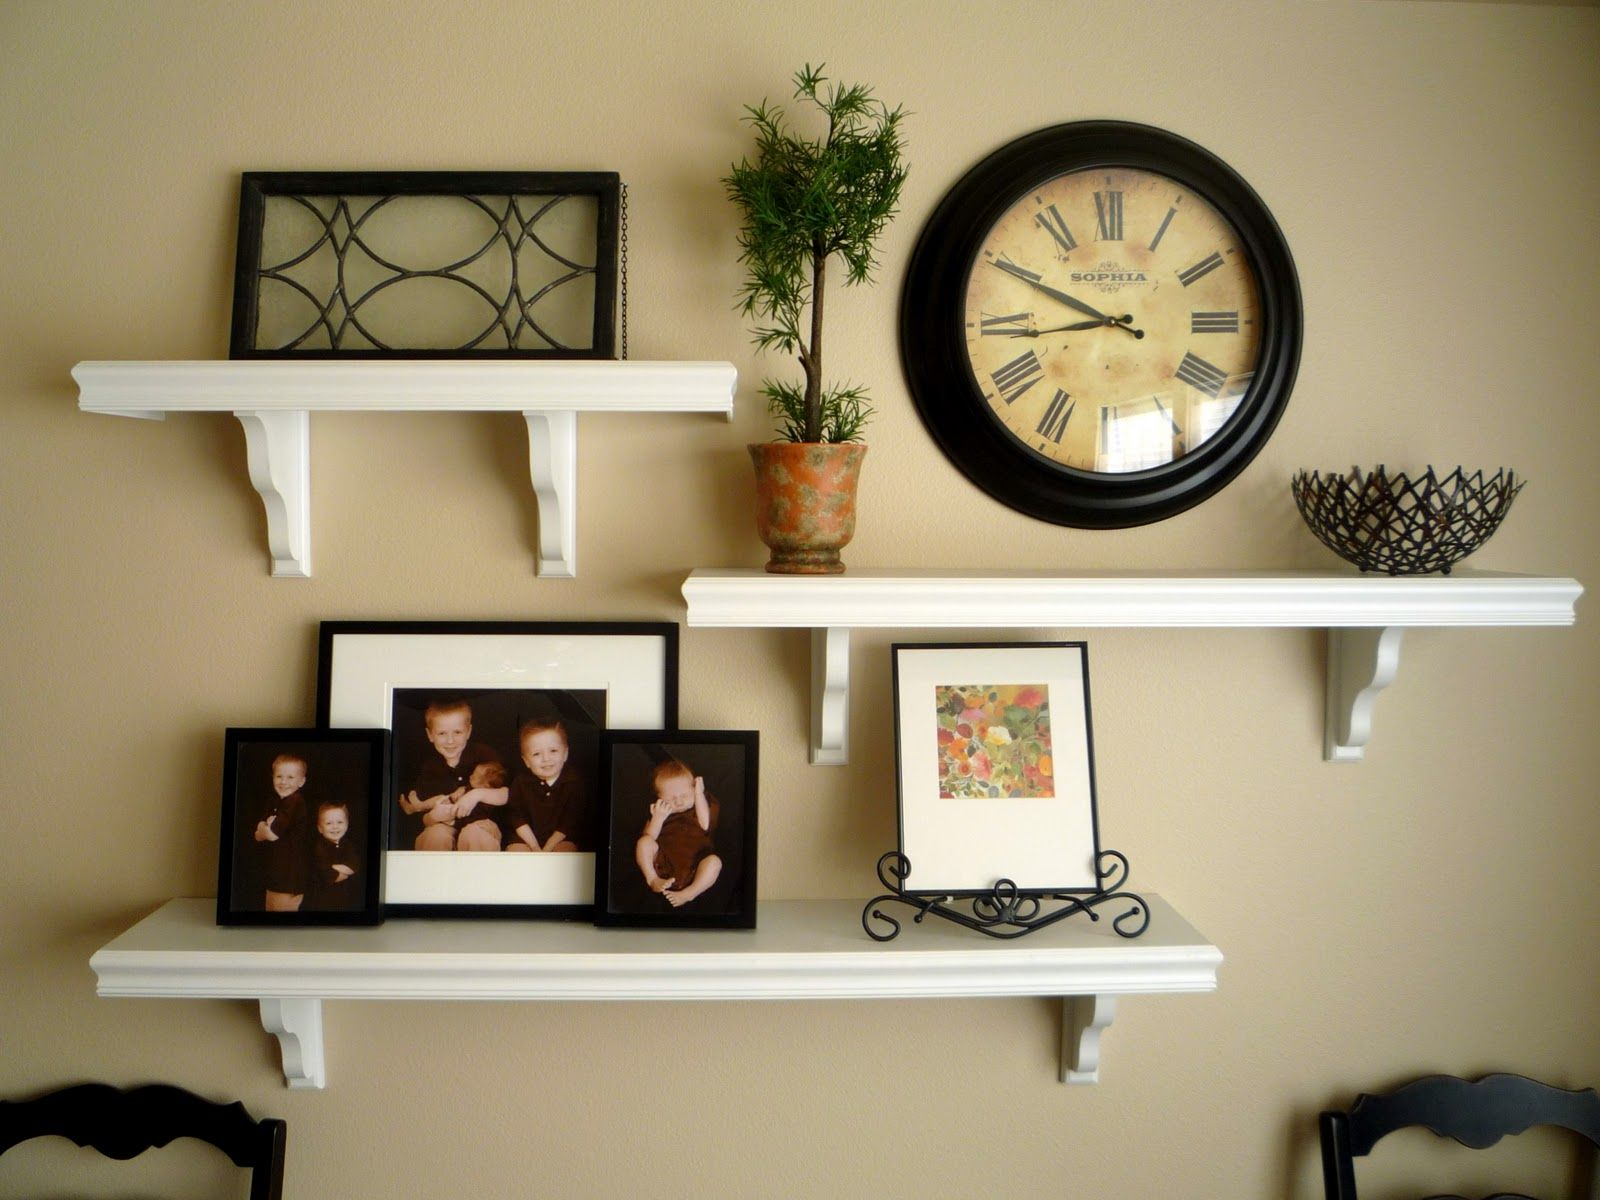 Bedroom Wall Shelves Decorating Ideas Picture And Shelves On Wall Together It All Started